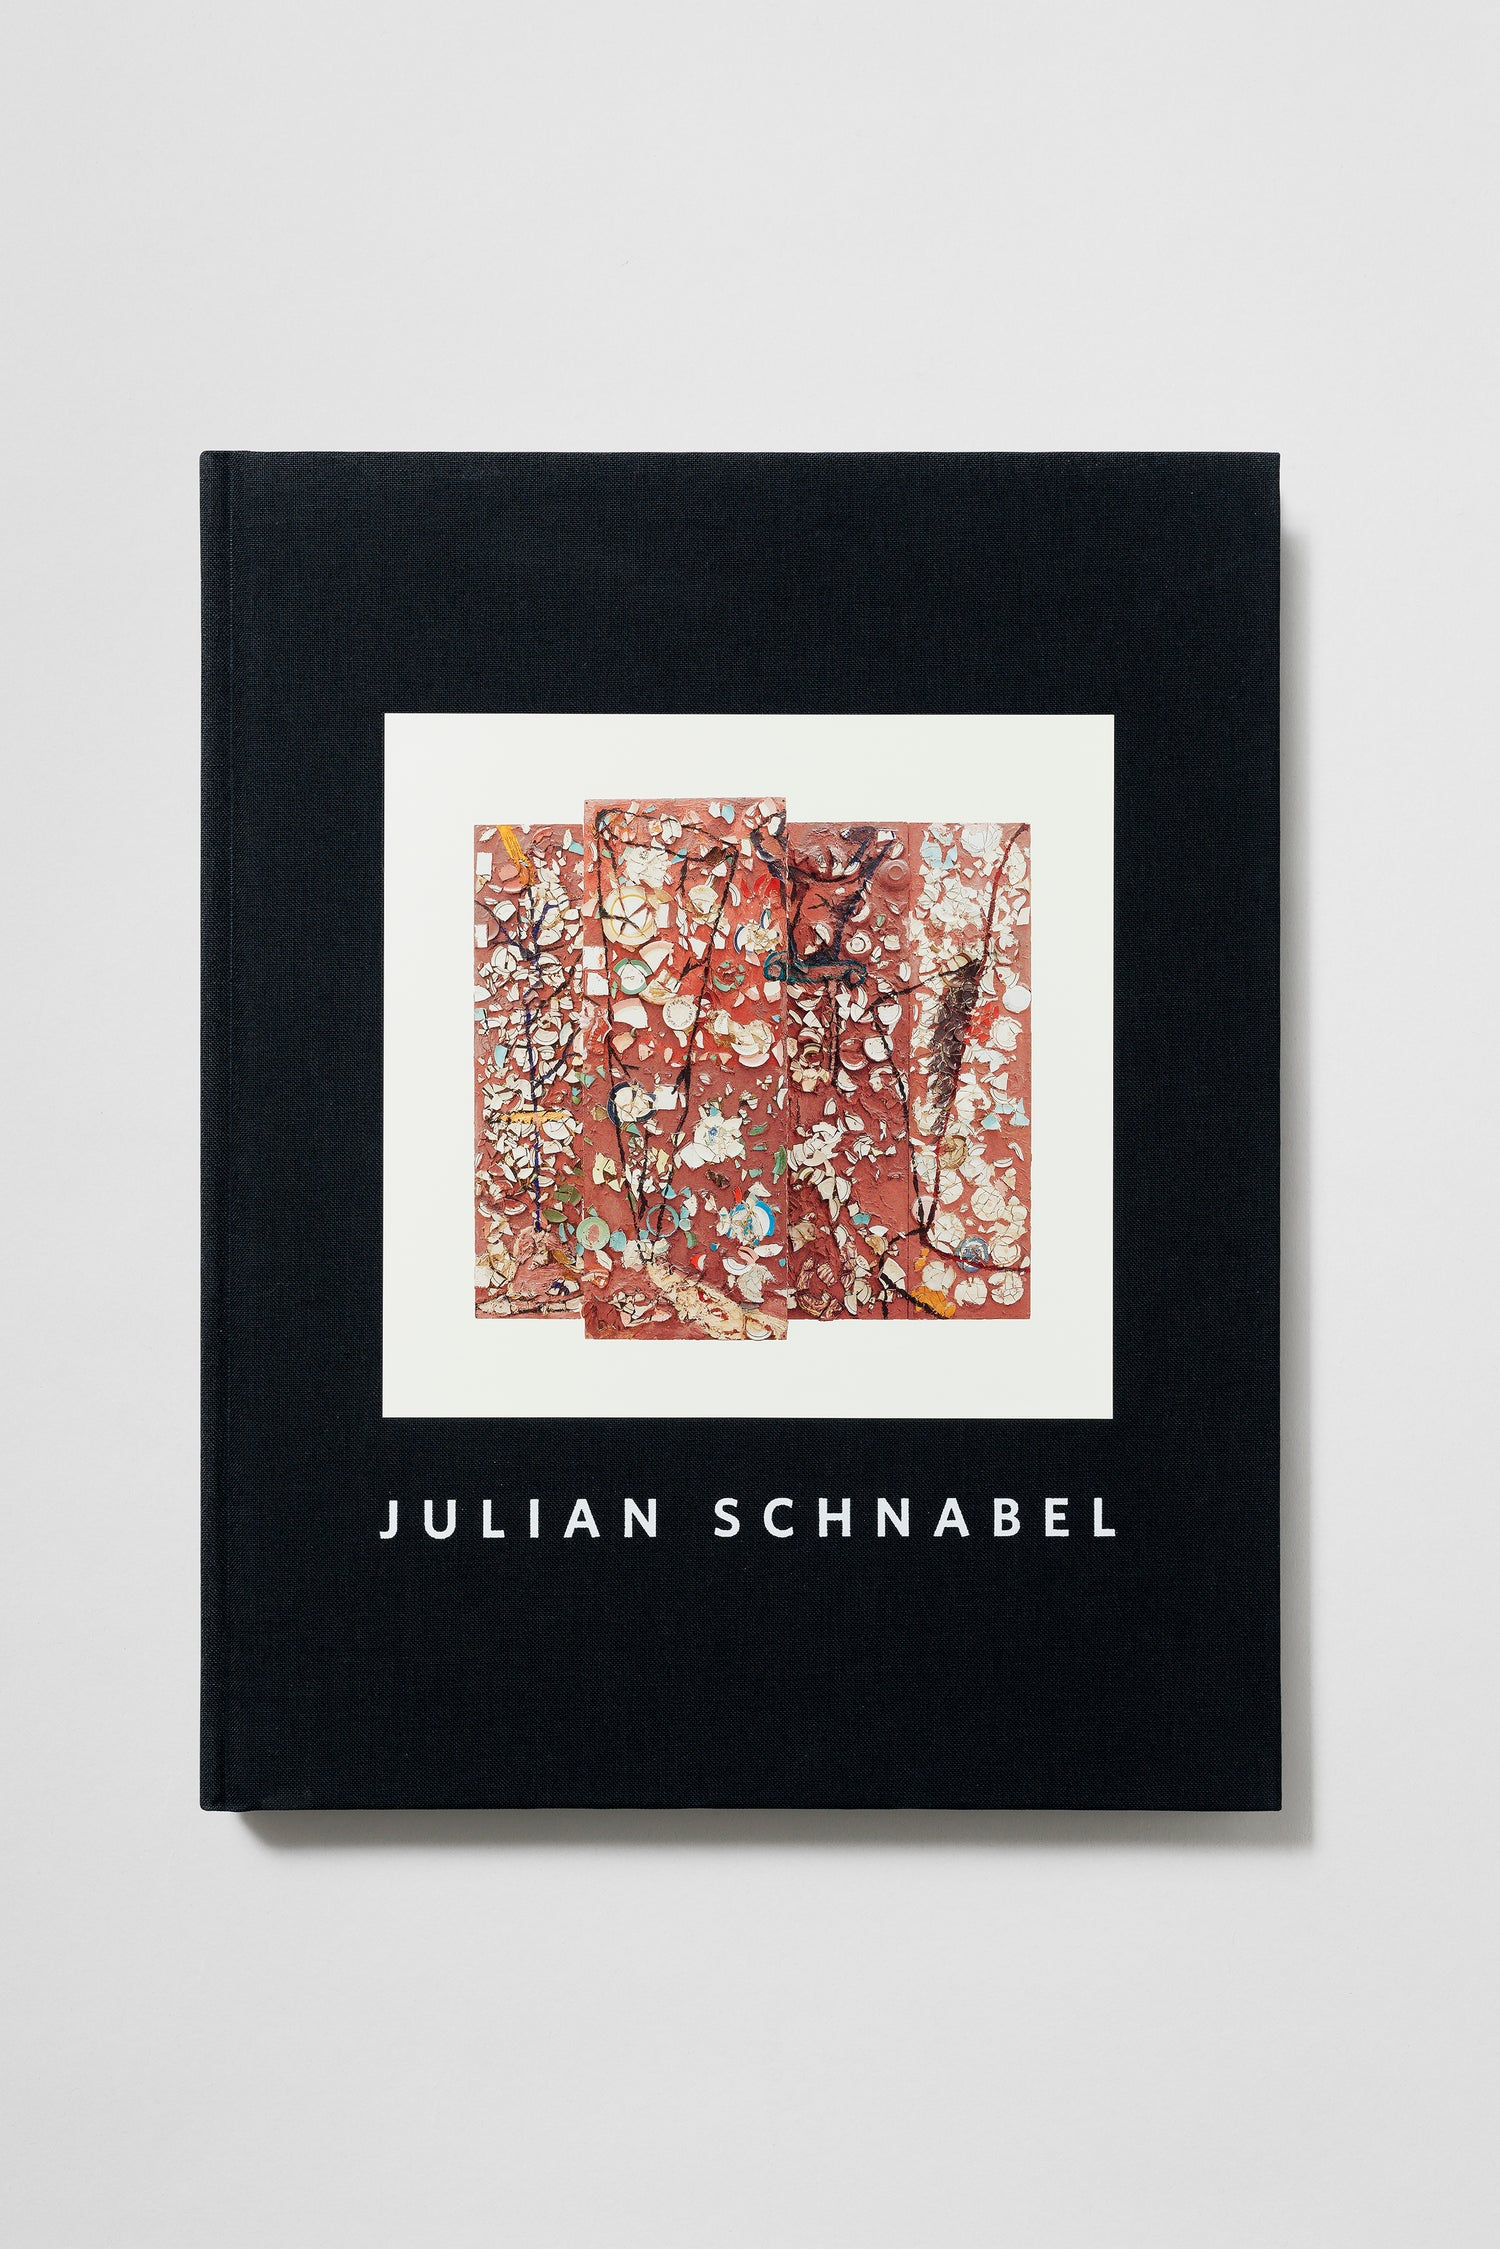 Image of Julian Schnabel - Plate Paintings 1978-1989